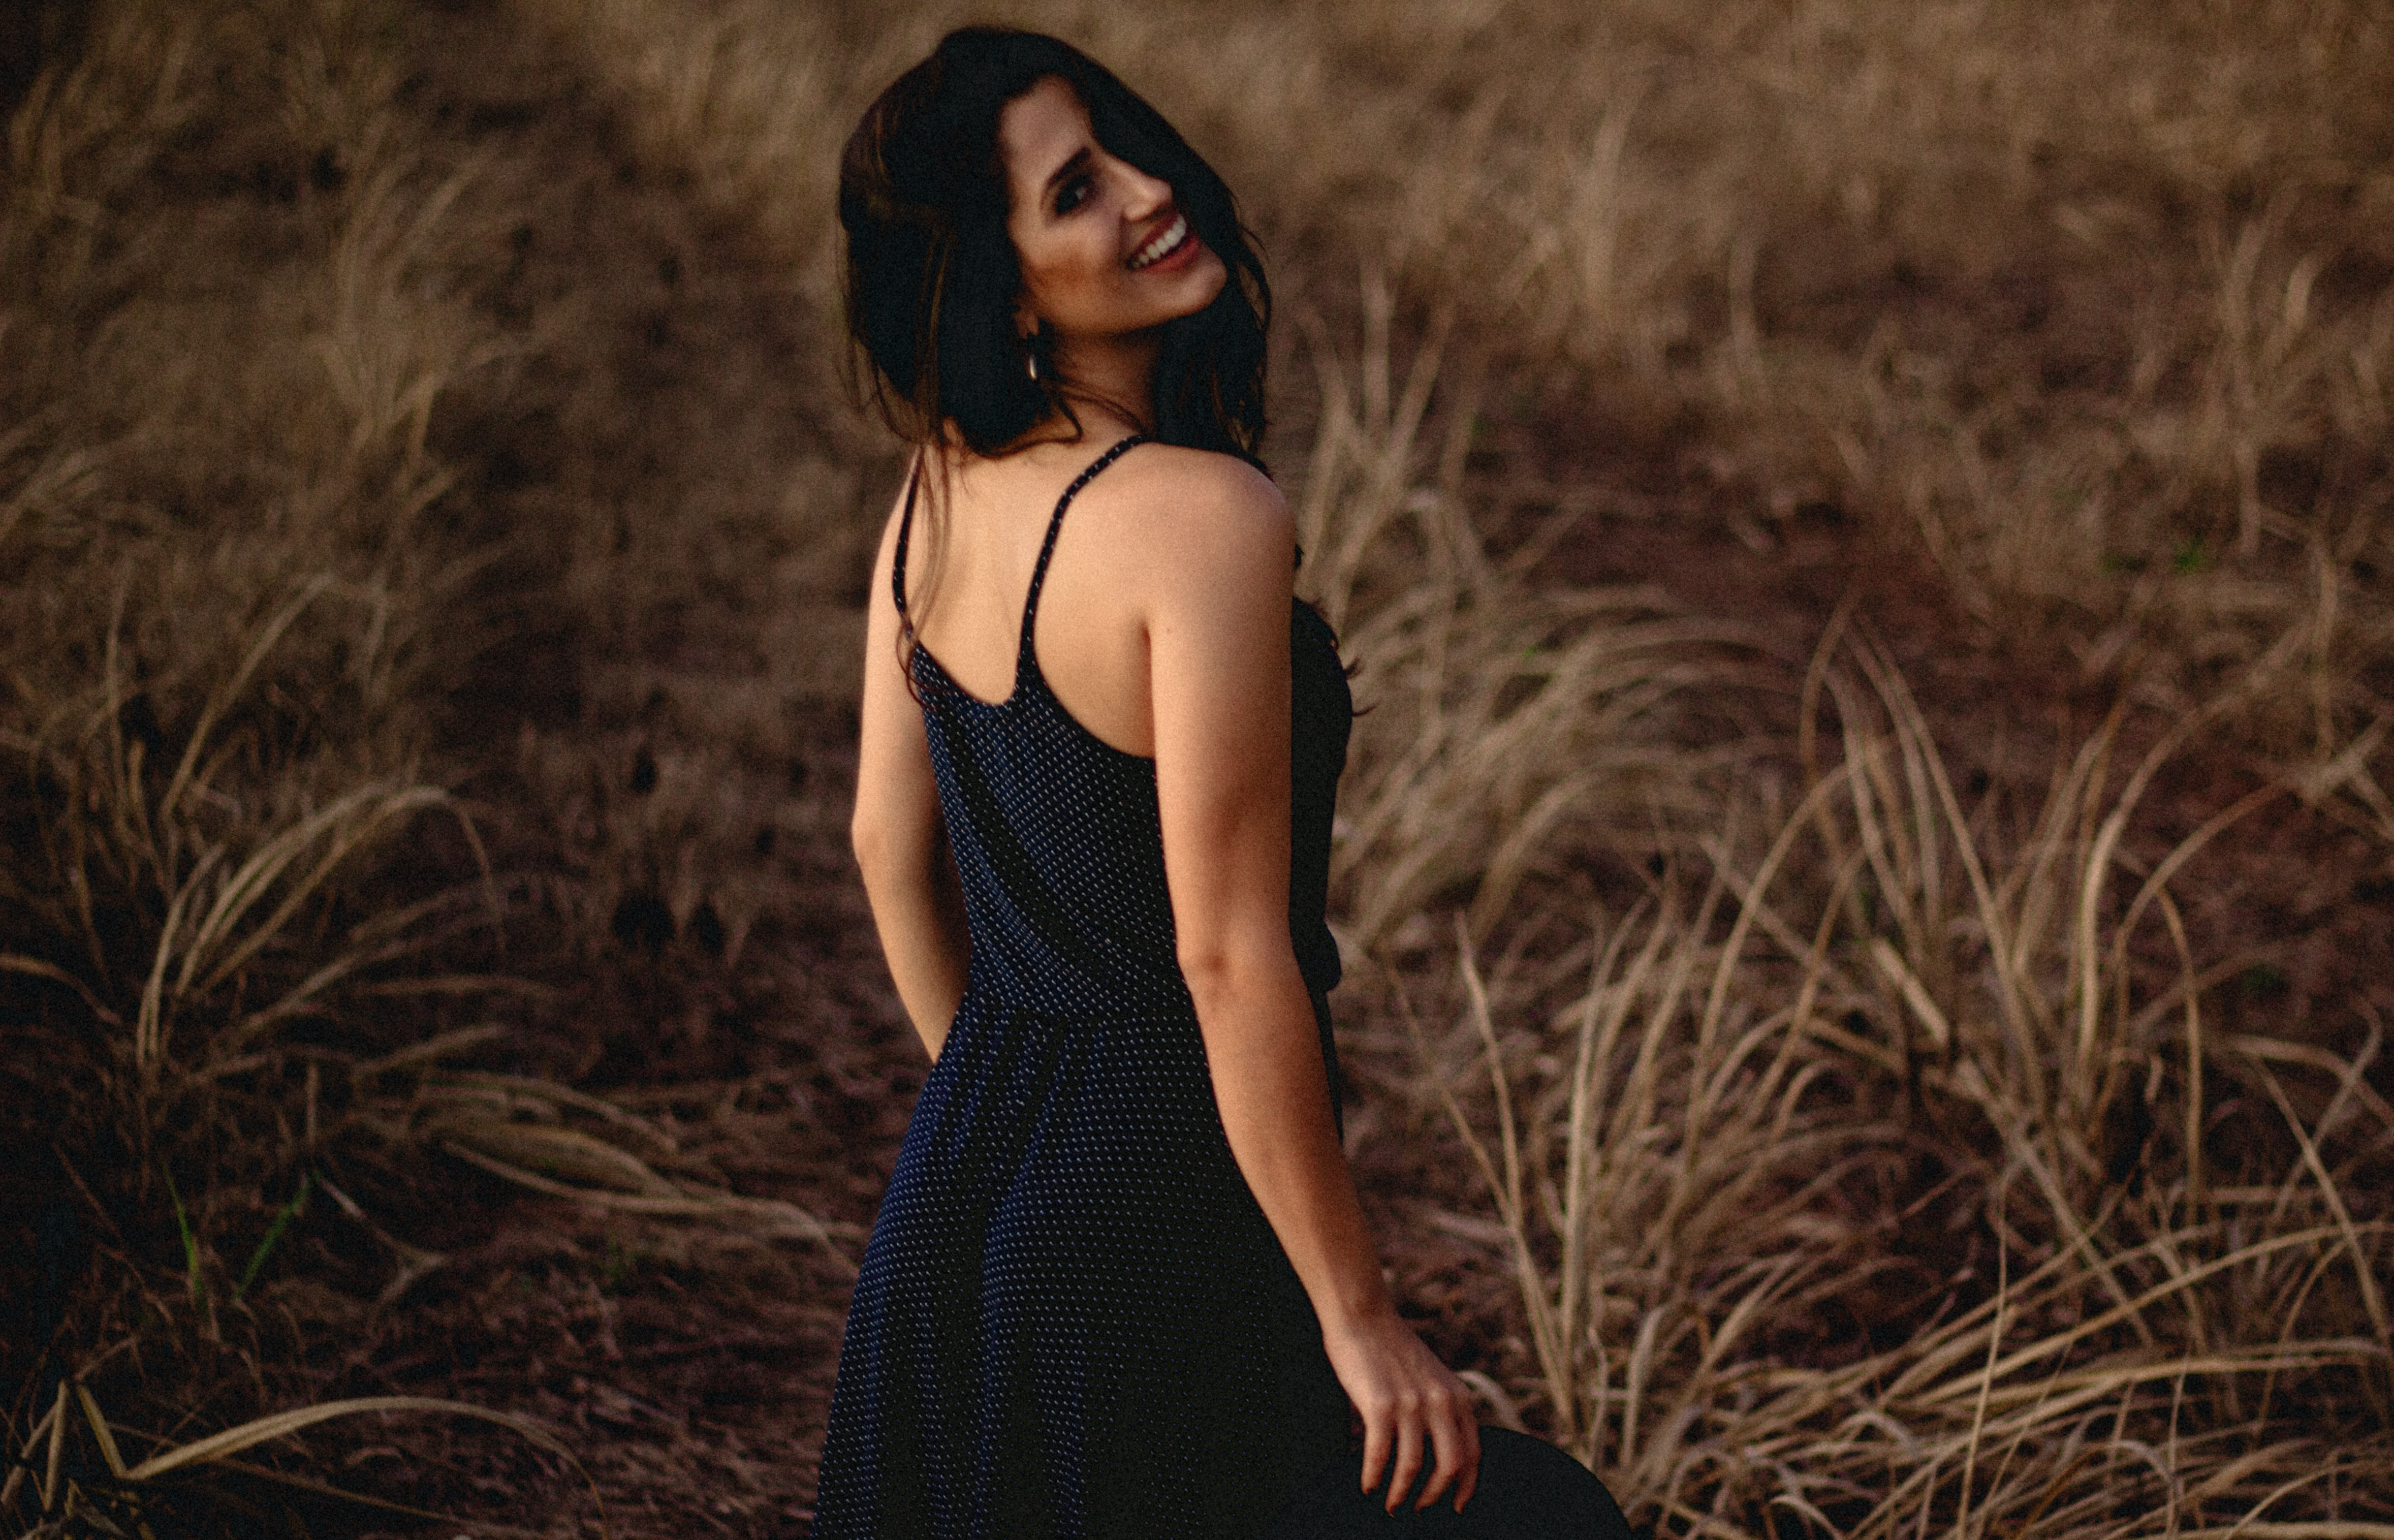 A woman in a black dress smiles over her shoulder in a field of brown grass